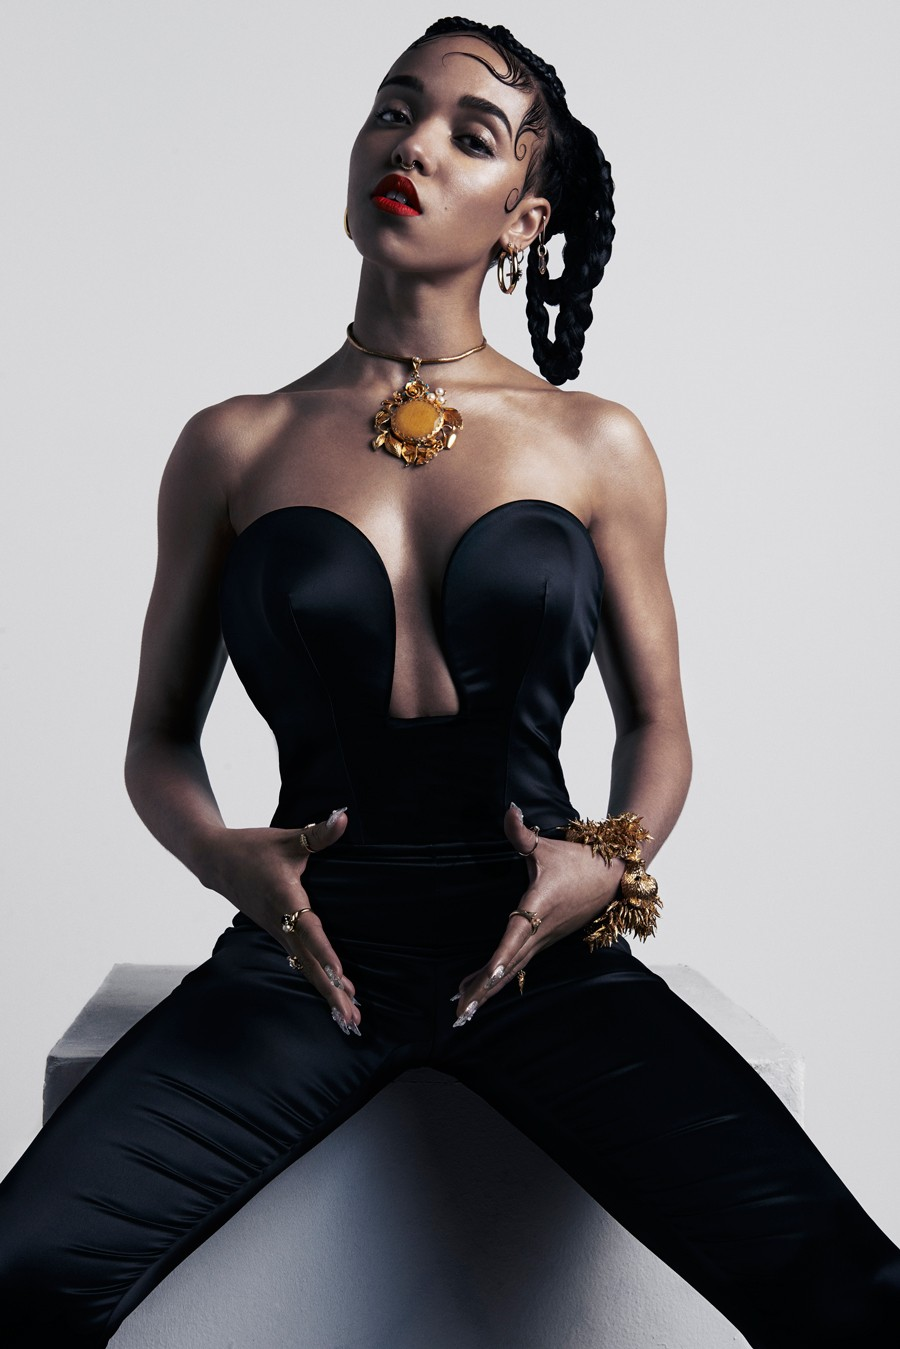 FKA Twigs - DOMINIC SHELDON